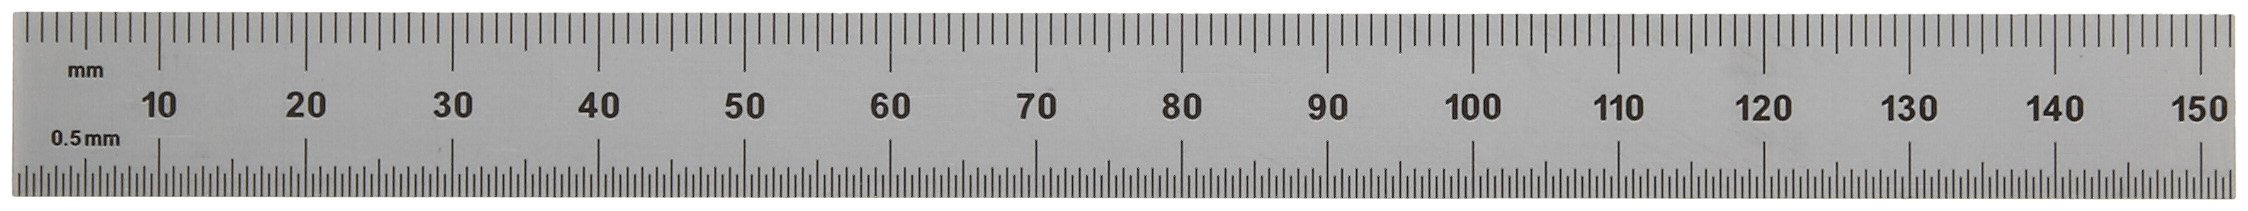 Mitutoyo 182-205, Steel Rule, 6'' X 150mm, (1/32, 1/64'', 1mm, 1/2mm), 1/64'' Thick X 1/2'' Wide, Satin Chrome Finish Tempered Stainless Steel by Mitutoyo (Image #2)